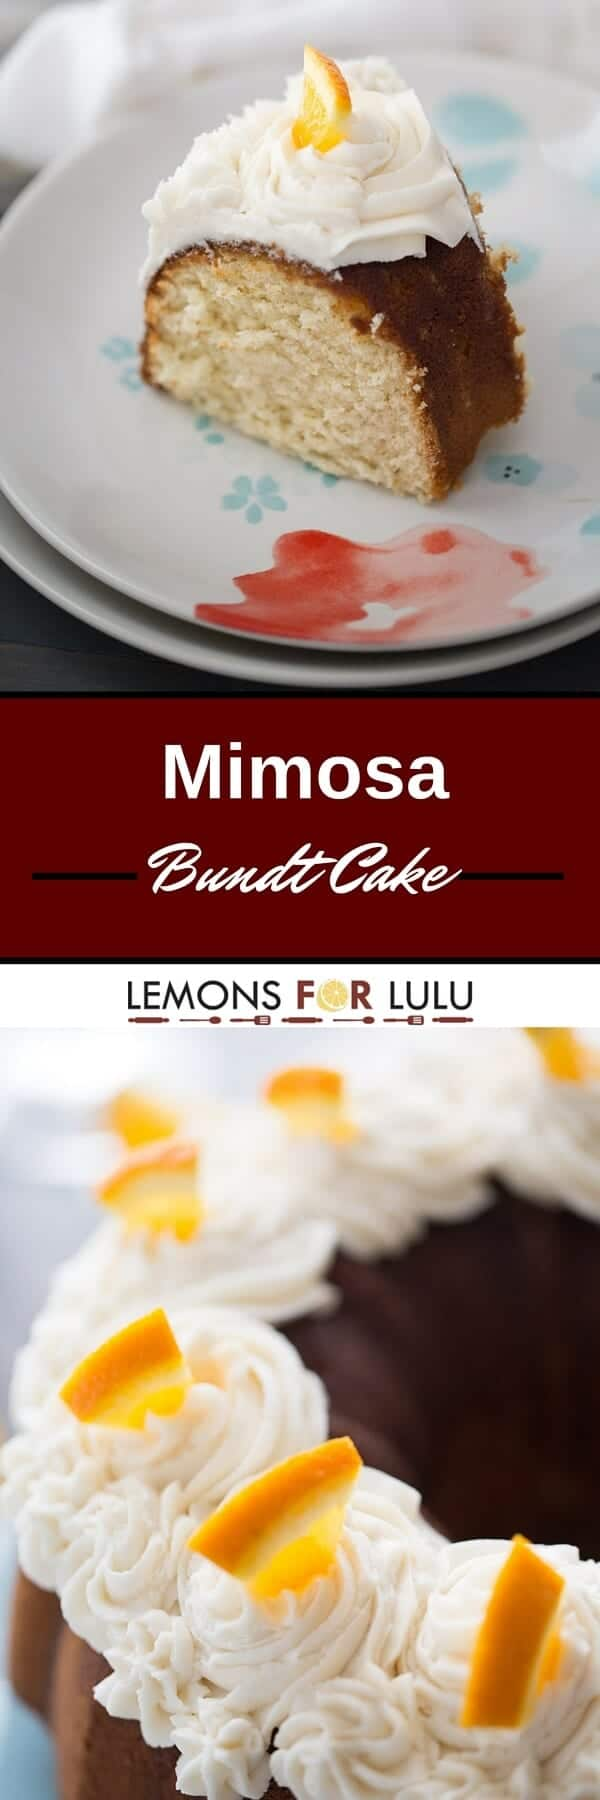 Love mimosas? Then this cake is for you! This cake is made with both champagne and orange juice and topped with a creamy champagne buttercream!